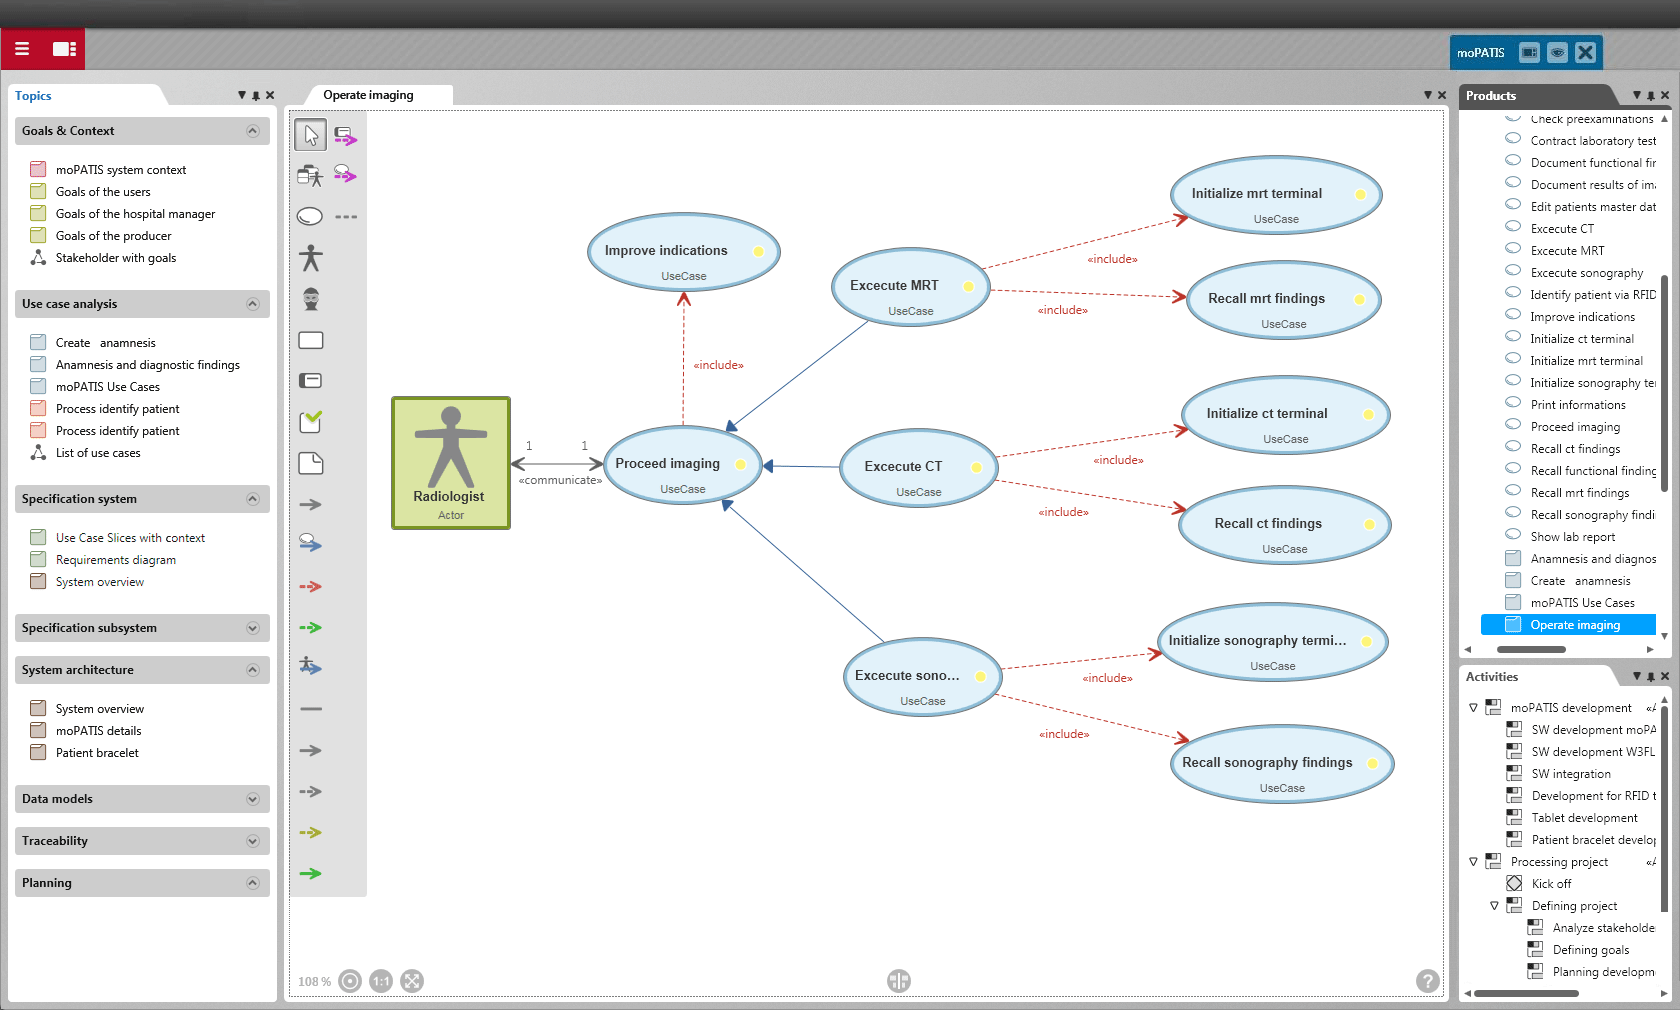 A use case diagram in objectiF RPM